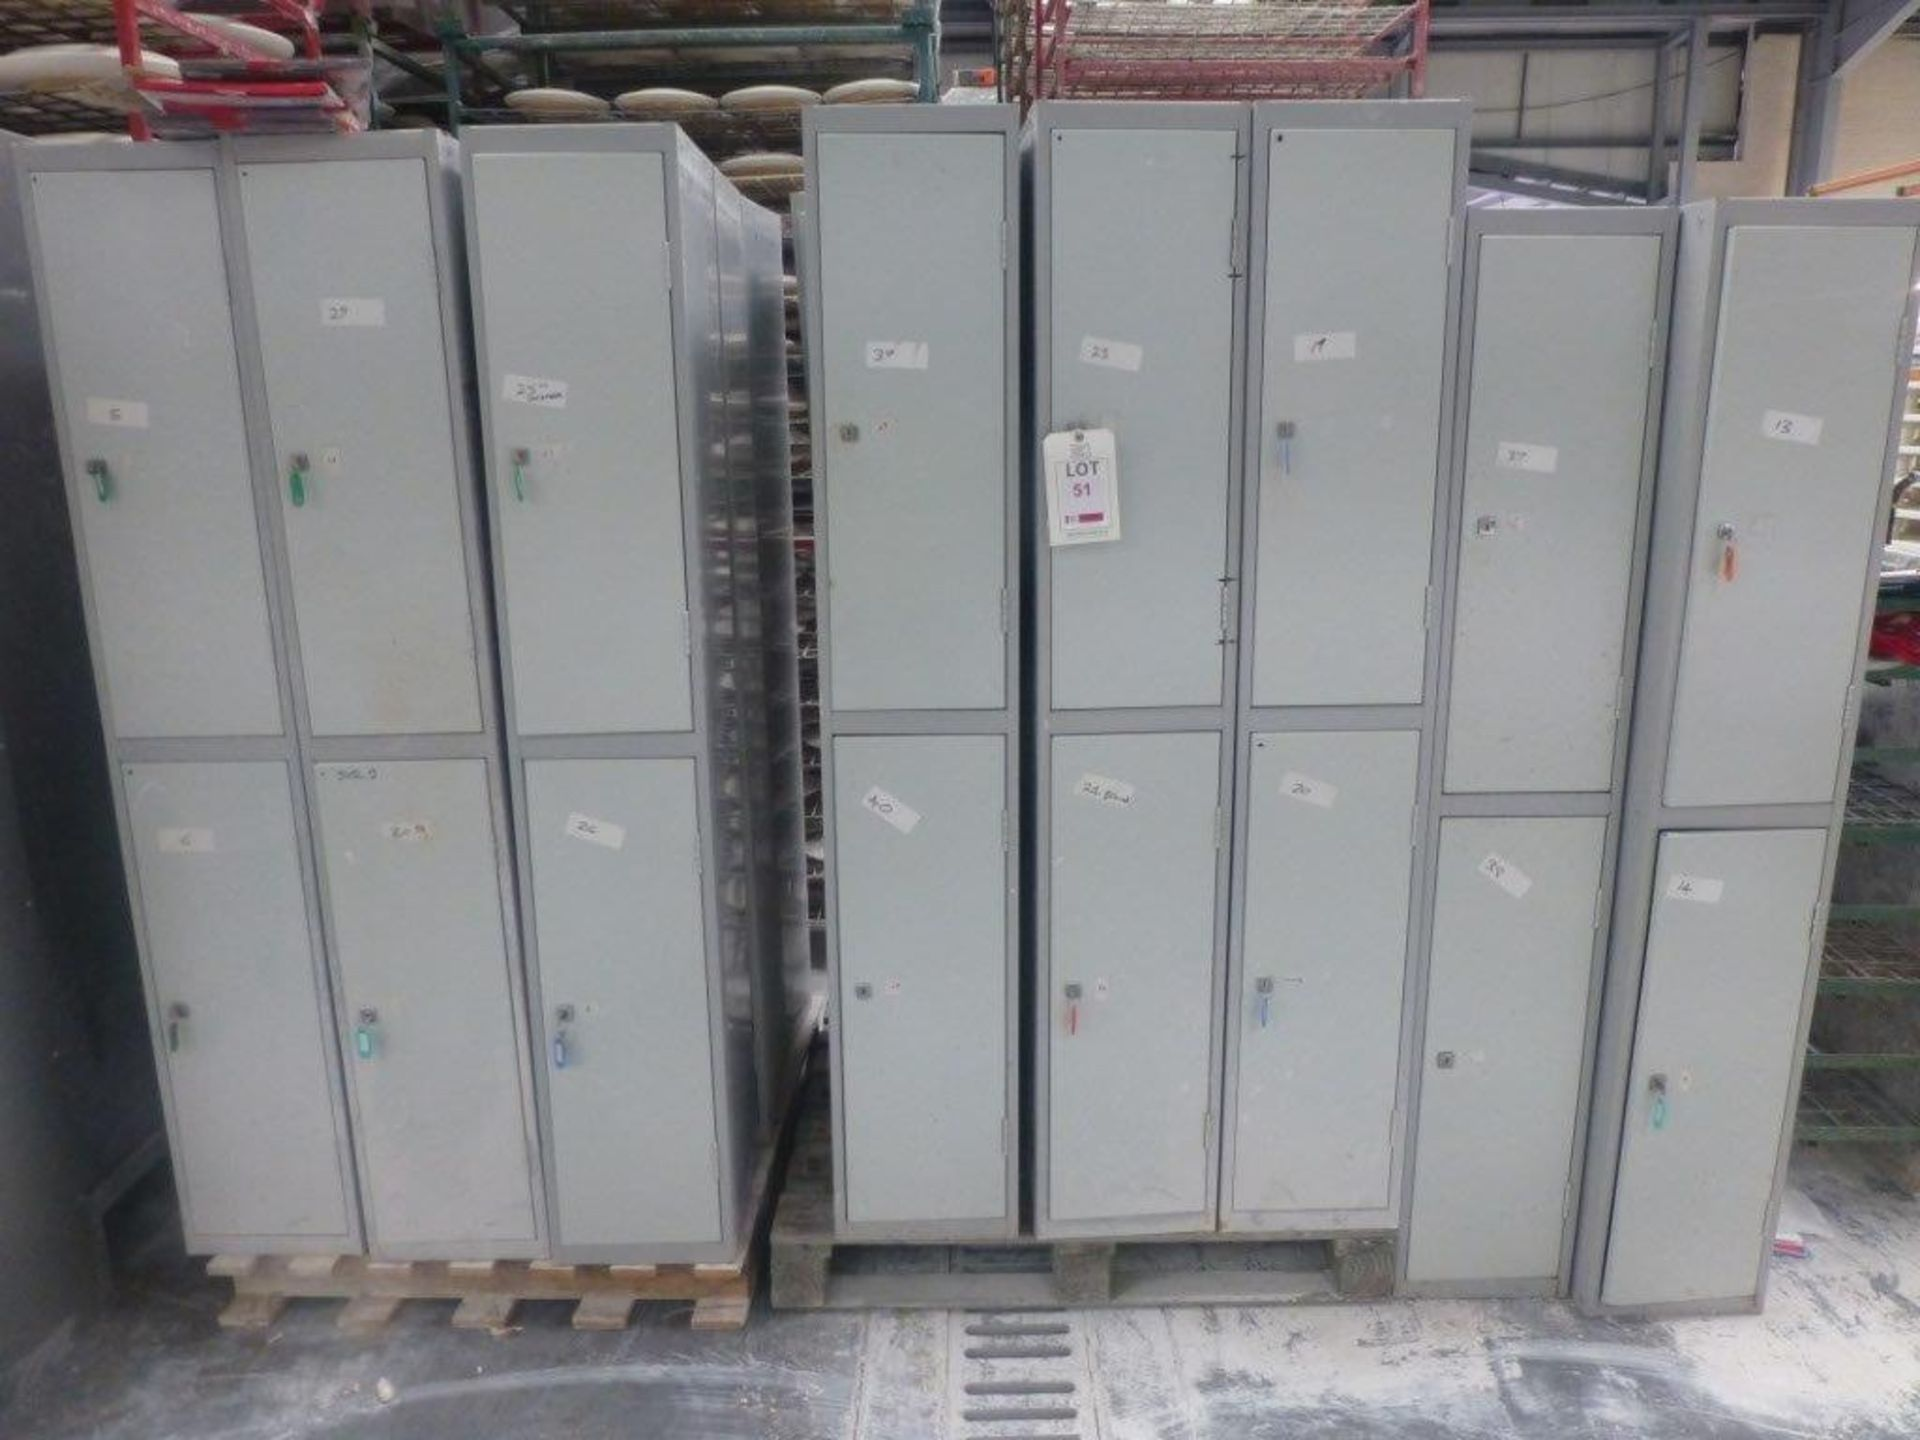 Lot 51 - 20 steel double door personnel locker units